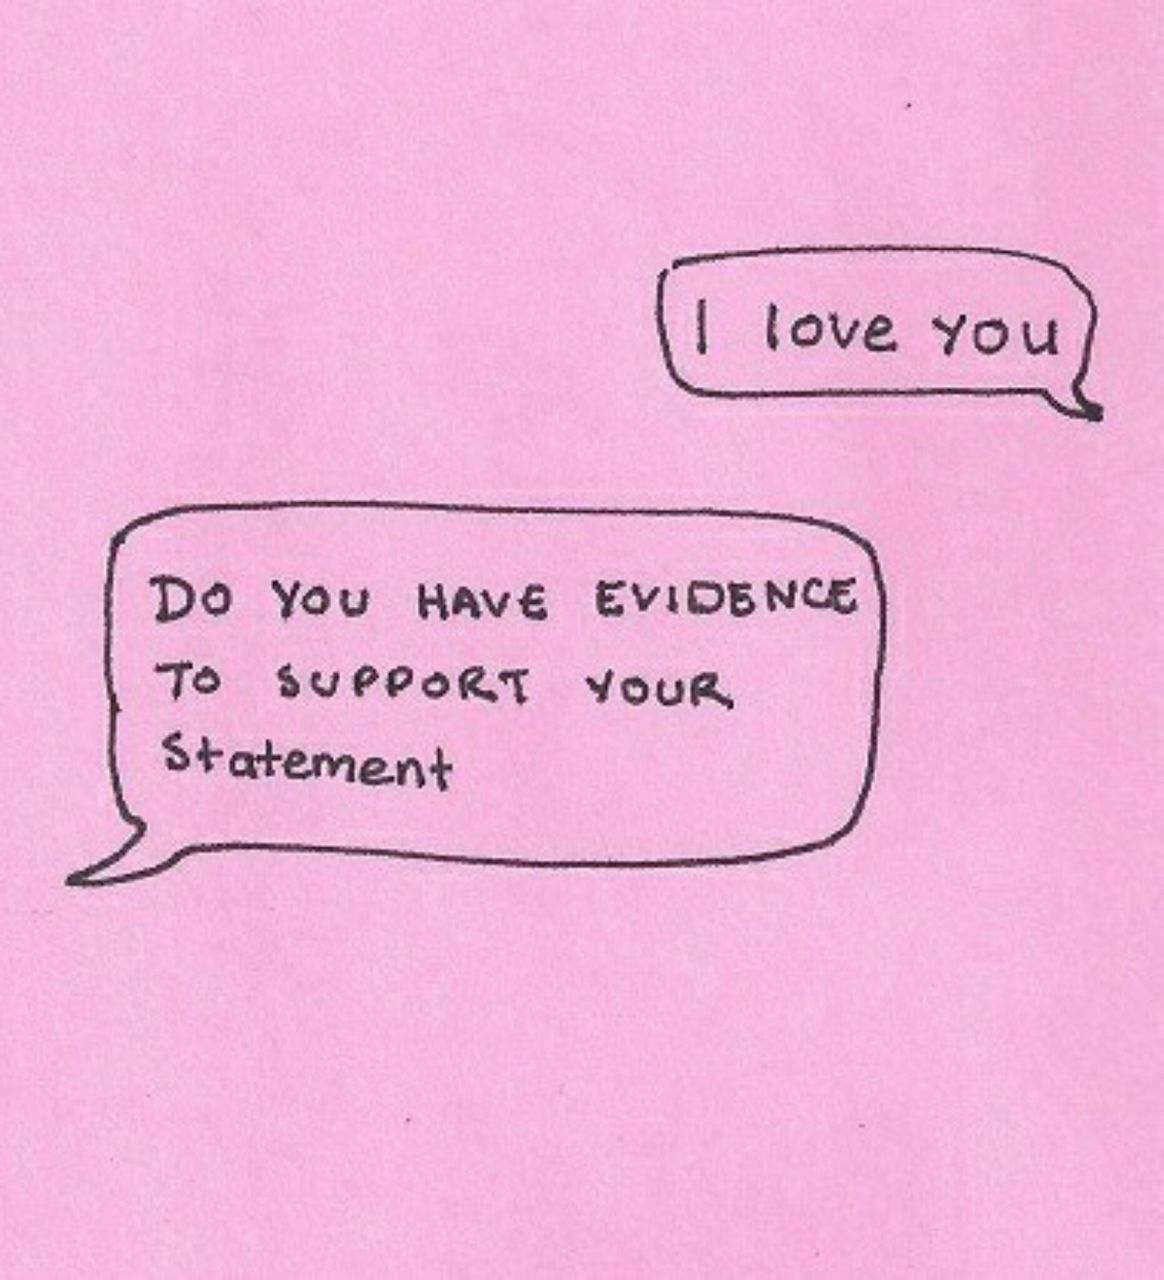 evidence law The legal definition of evidence is proof of fact(s) presented at a judicial hearing such as a trial.